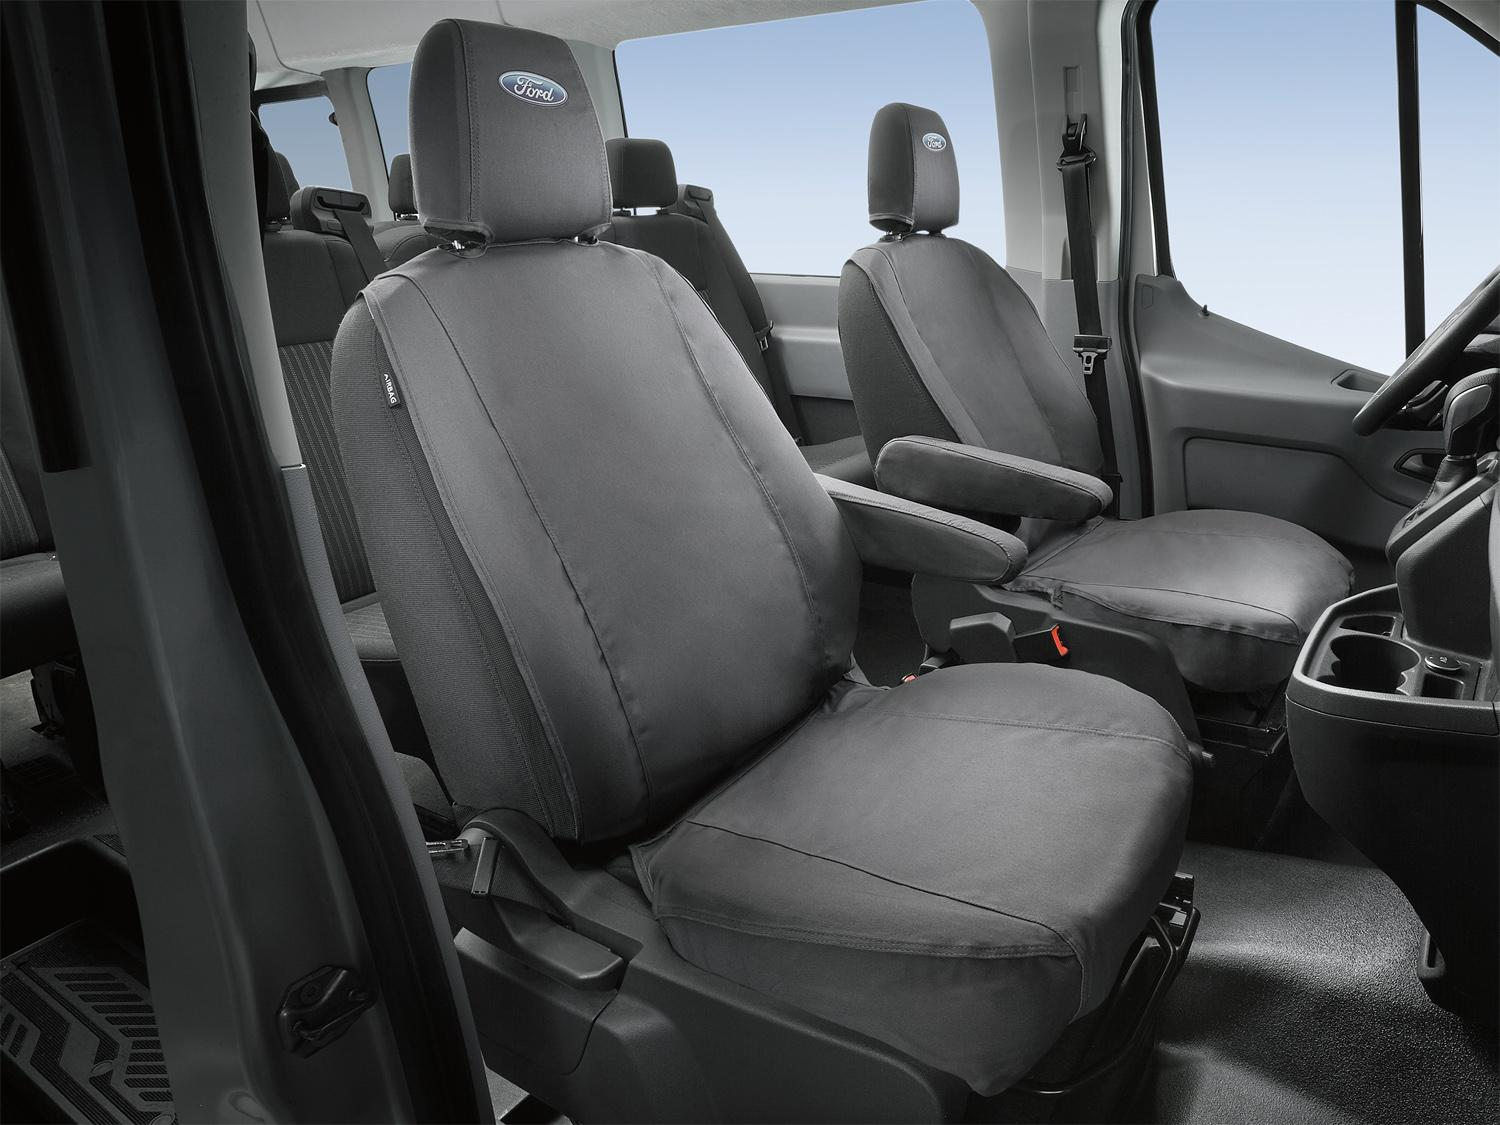 Seat Covers Front Row, 40/20/40, Charcoal